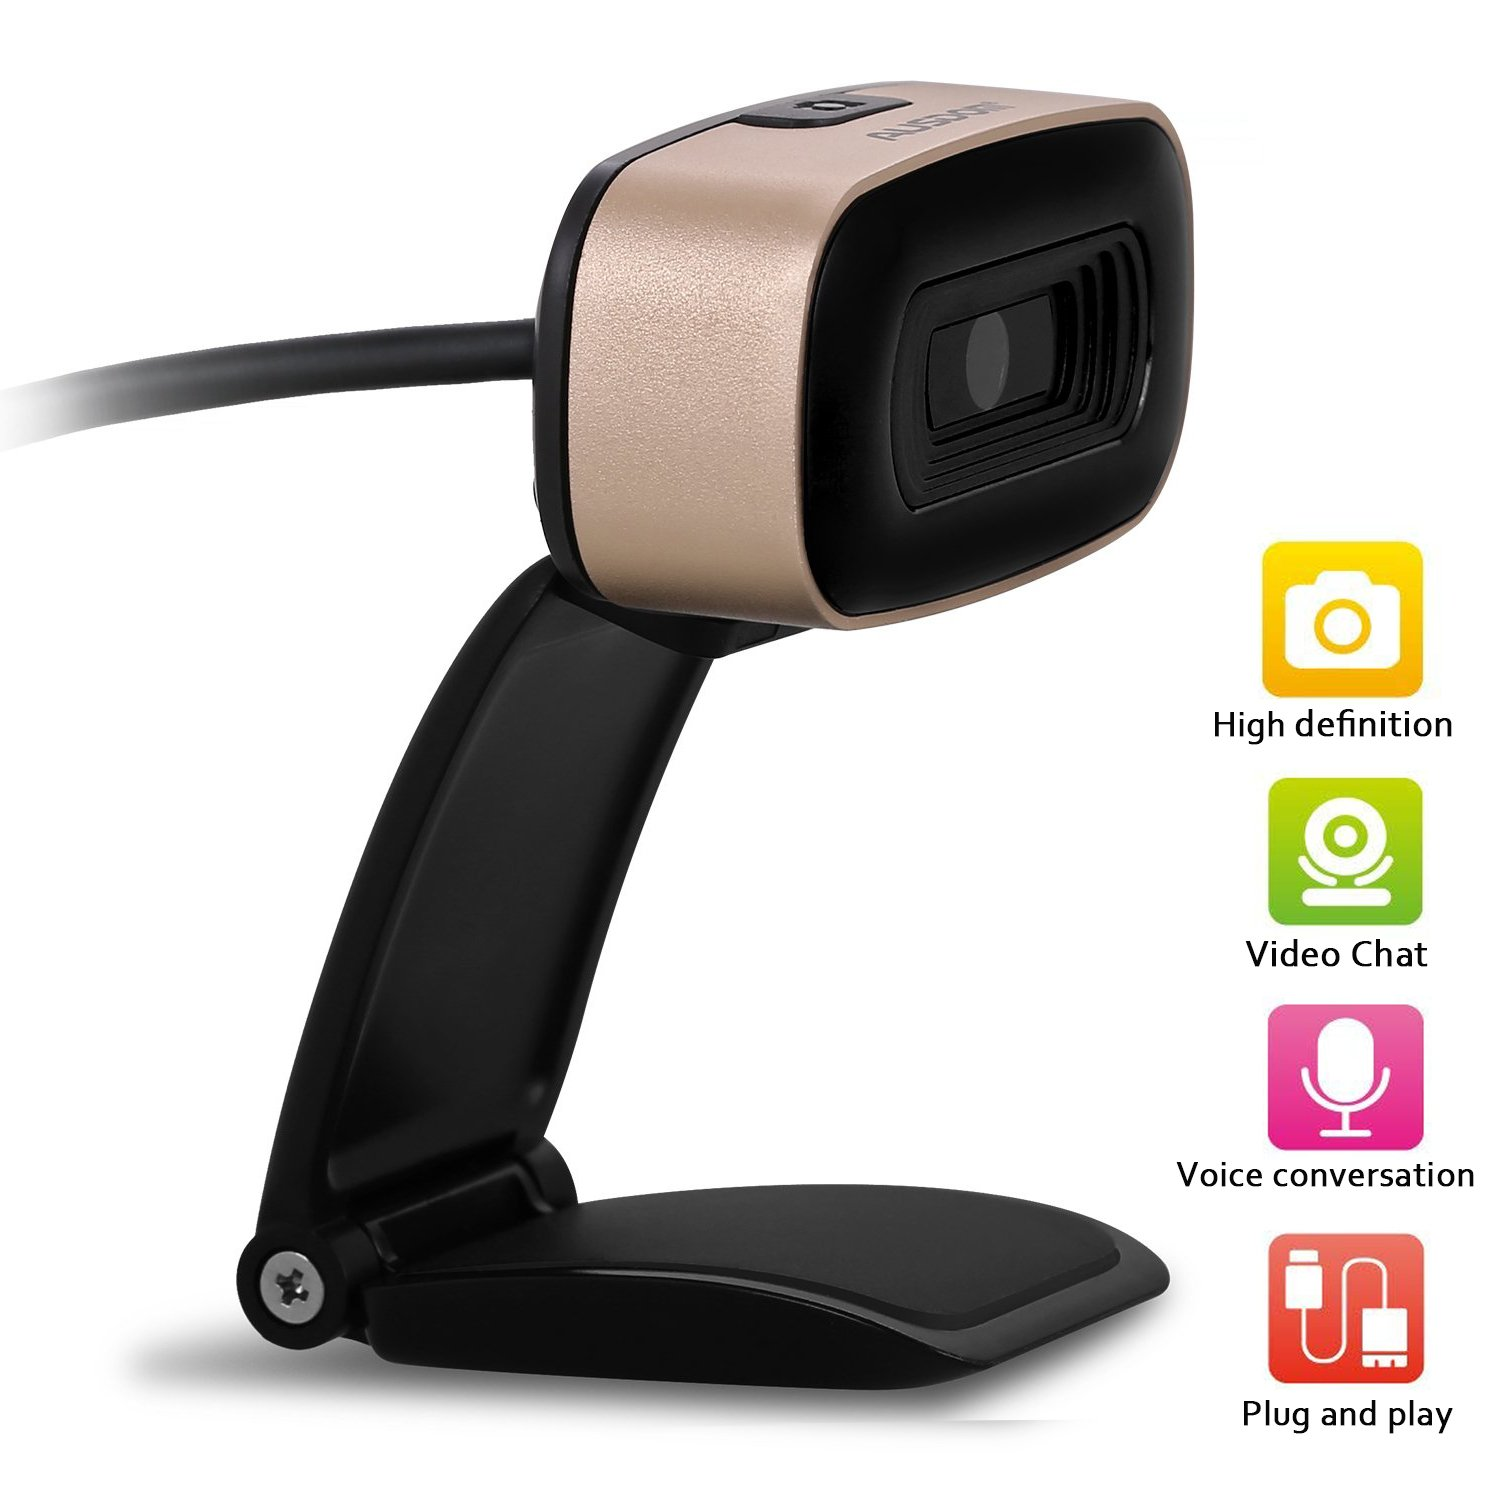 Ausdom HD Webcam, Widescreen 720P Web Camera with Built-in Noise Reduction Microphone for Video Calling and Recording, Desktop PC or Laptop USB Camera for Skype Facetime YouTube